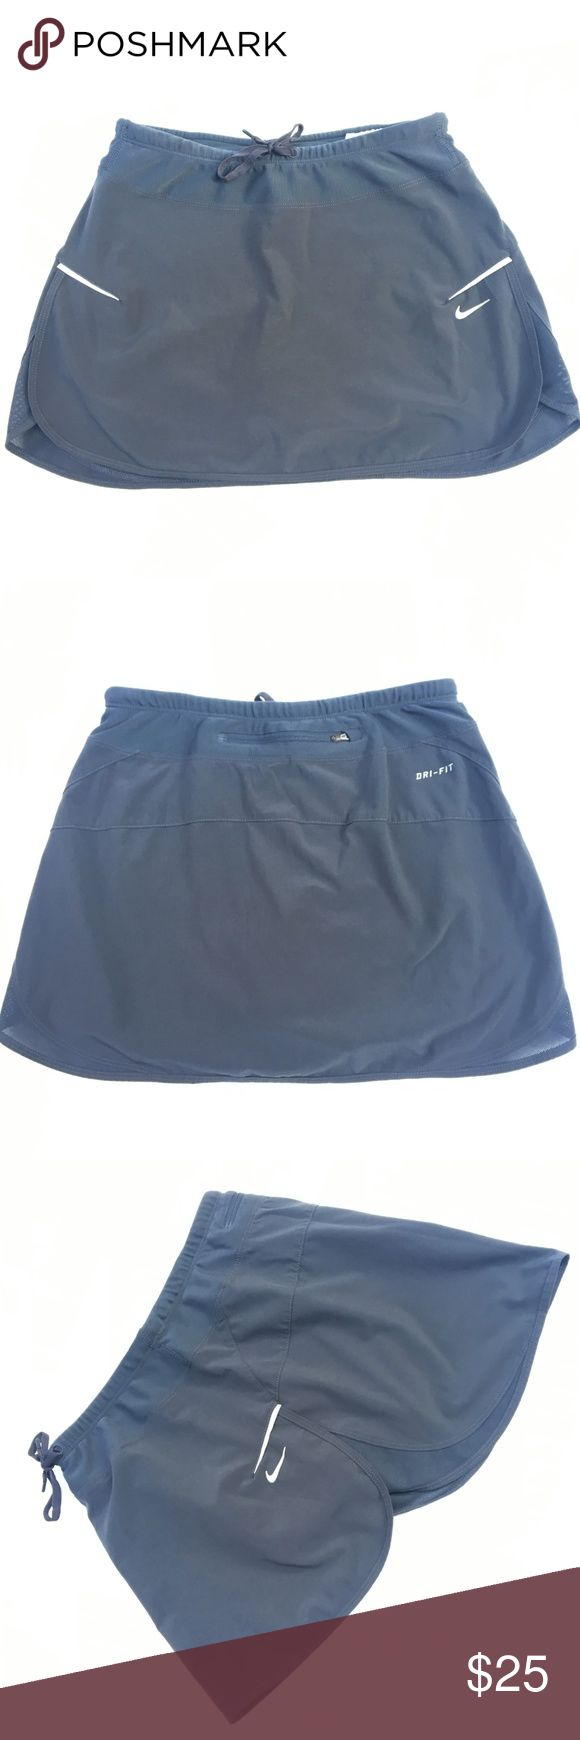 "Nike Running Skort Mini Skirt Gray Dri Fit XS WA8 Nike Women's Shorts Gray Dri-Fit Running Skirt over Shorts, A Line, Reflective Swoosh and Sides.  Back Zipper Waist Pouch.  Drawstring Waist, Overlap Side Split on Skirt. Size: XS X Small  Pit to Pit: ""  Waist: 12""  Inseam: 3.5"" Length: 11.75""  Condition: Very Good. Comes from a pet and smoke free environment!  Please review pictures and contact me if you have any questions. Color: Gray  Material: 86% Polyester, 14% Spandex Country: Singapore…"